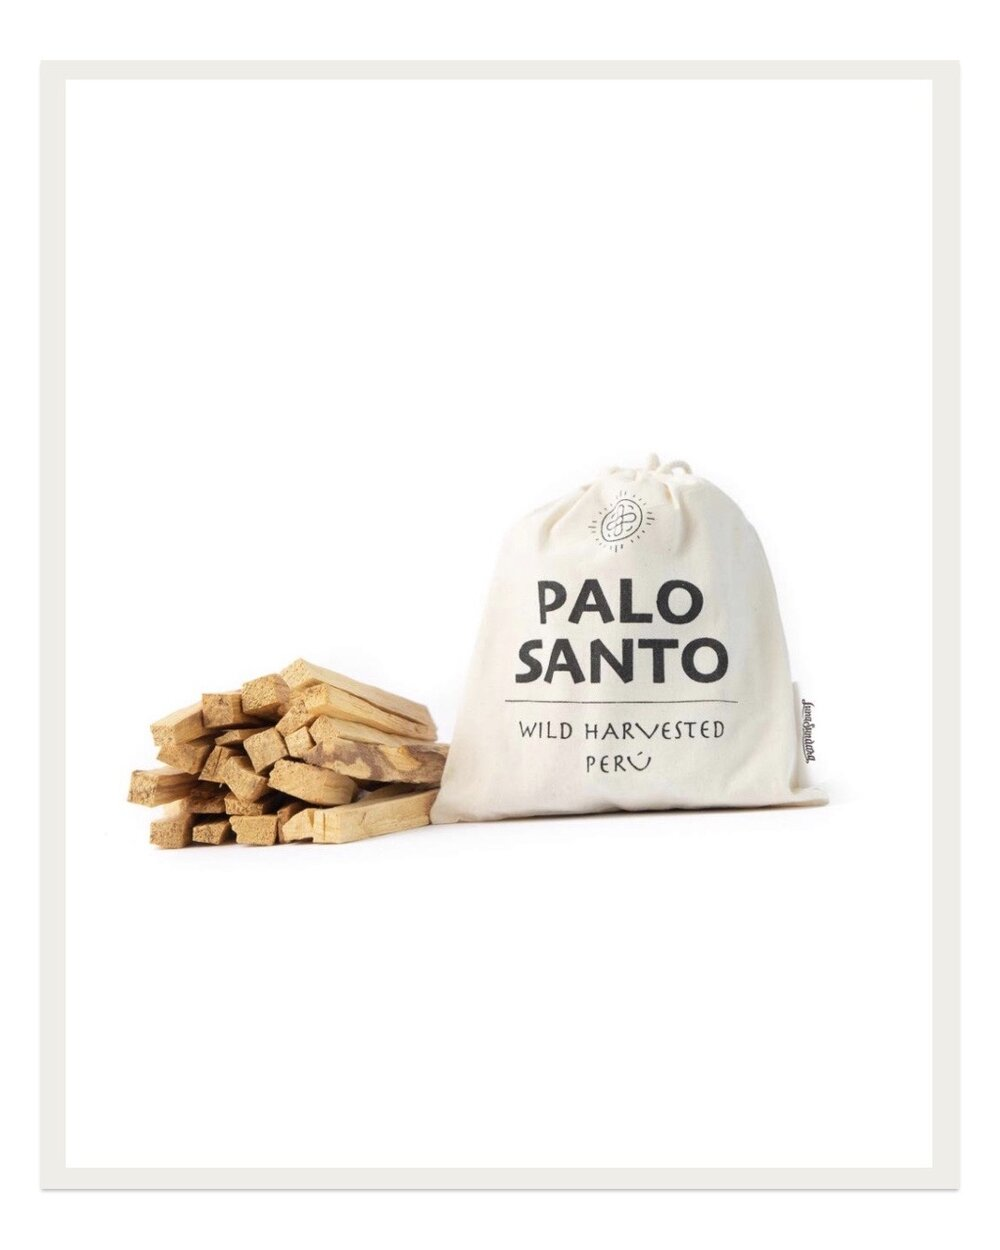 """Palo Santo, or """"holy wood"""","""" has traditionally been burned in South America to ward off negative energy. The scent produced from the smoke is said to promote creativity, love, and good fortune, and it is known to reduce stress and anxiety."""